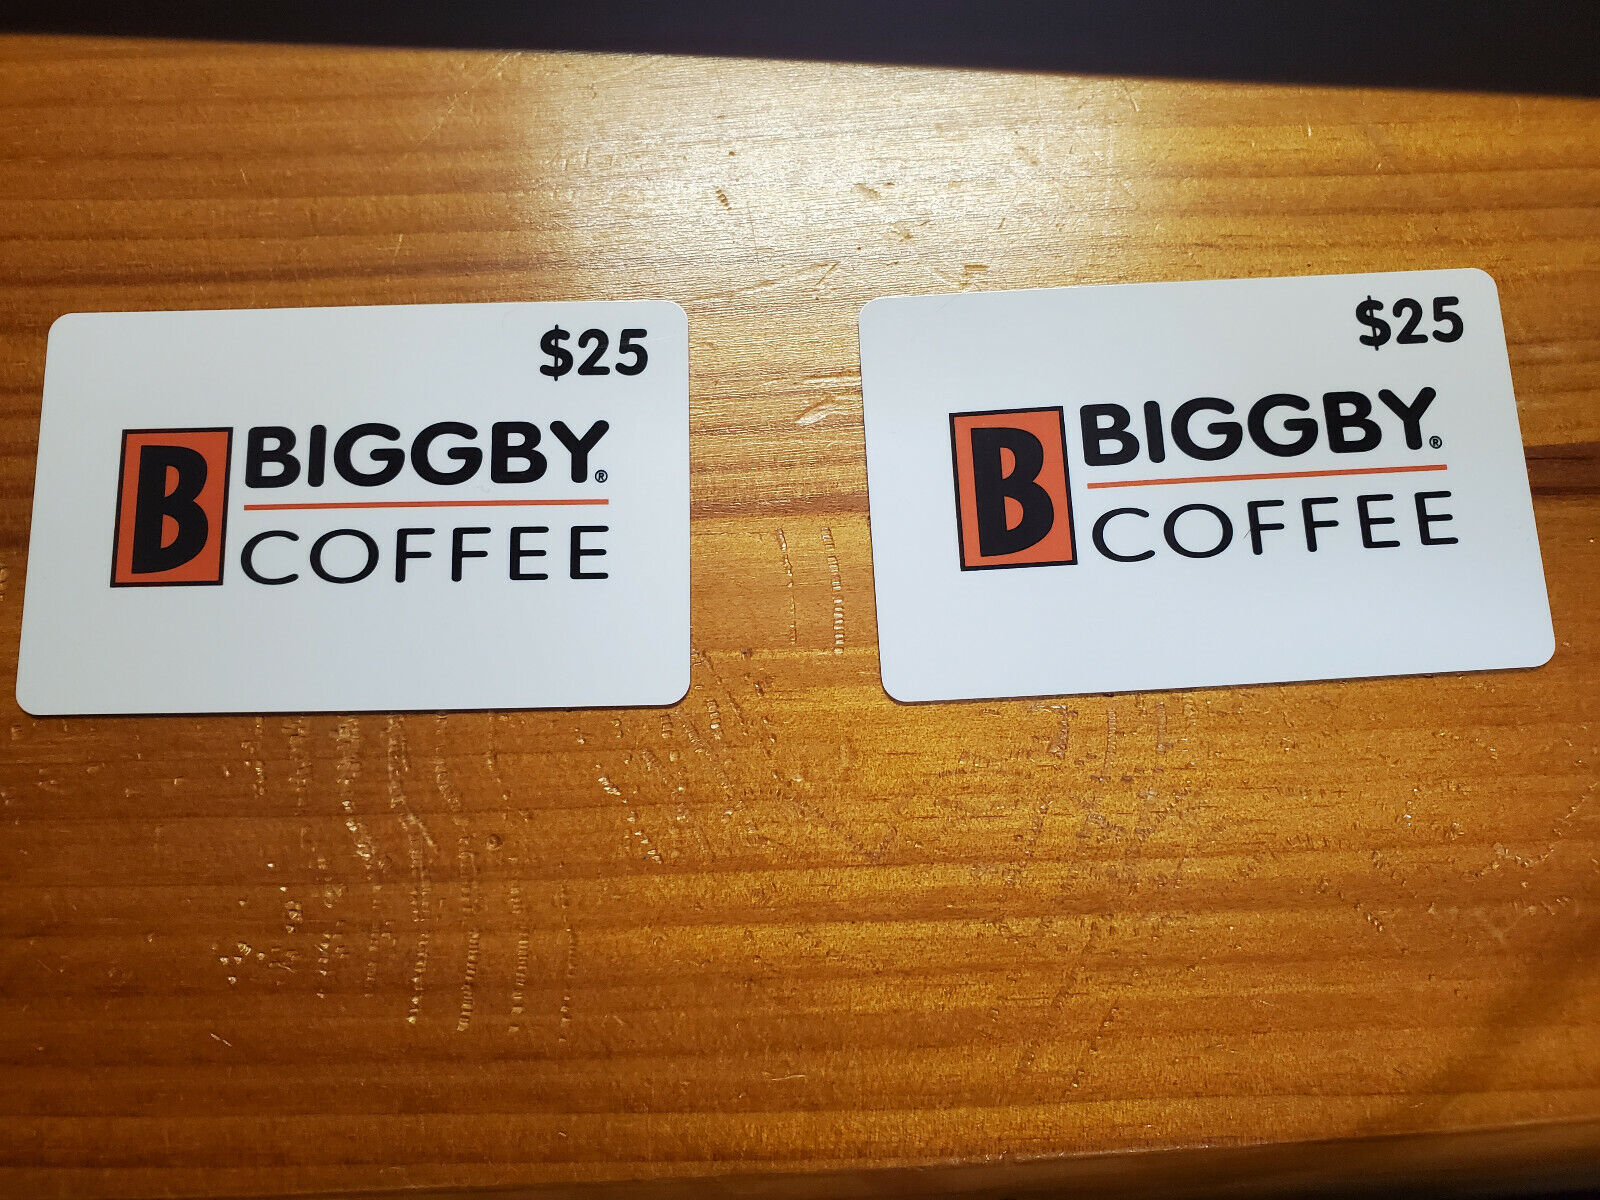 Biggby Coffee Gift Card 50 two Cards At 25 Per Piece FREE SHIPPING  - $35.00